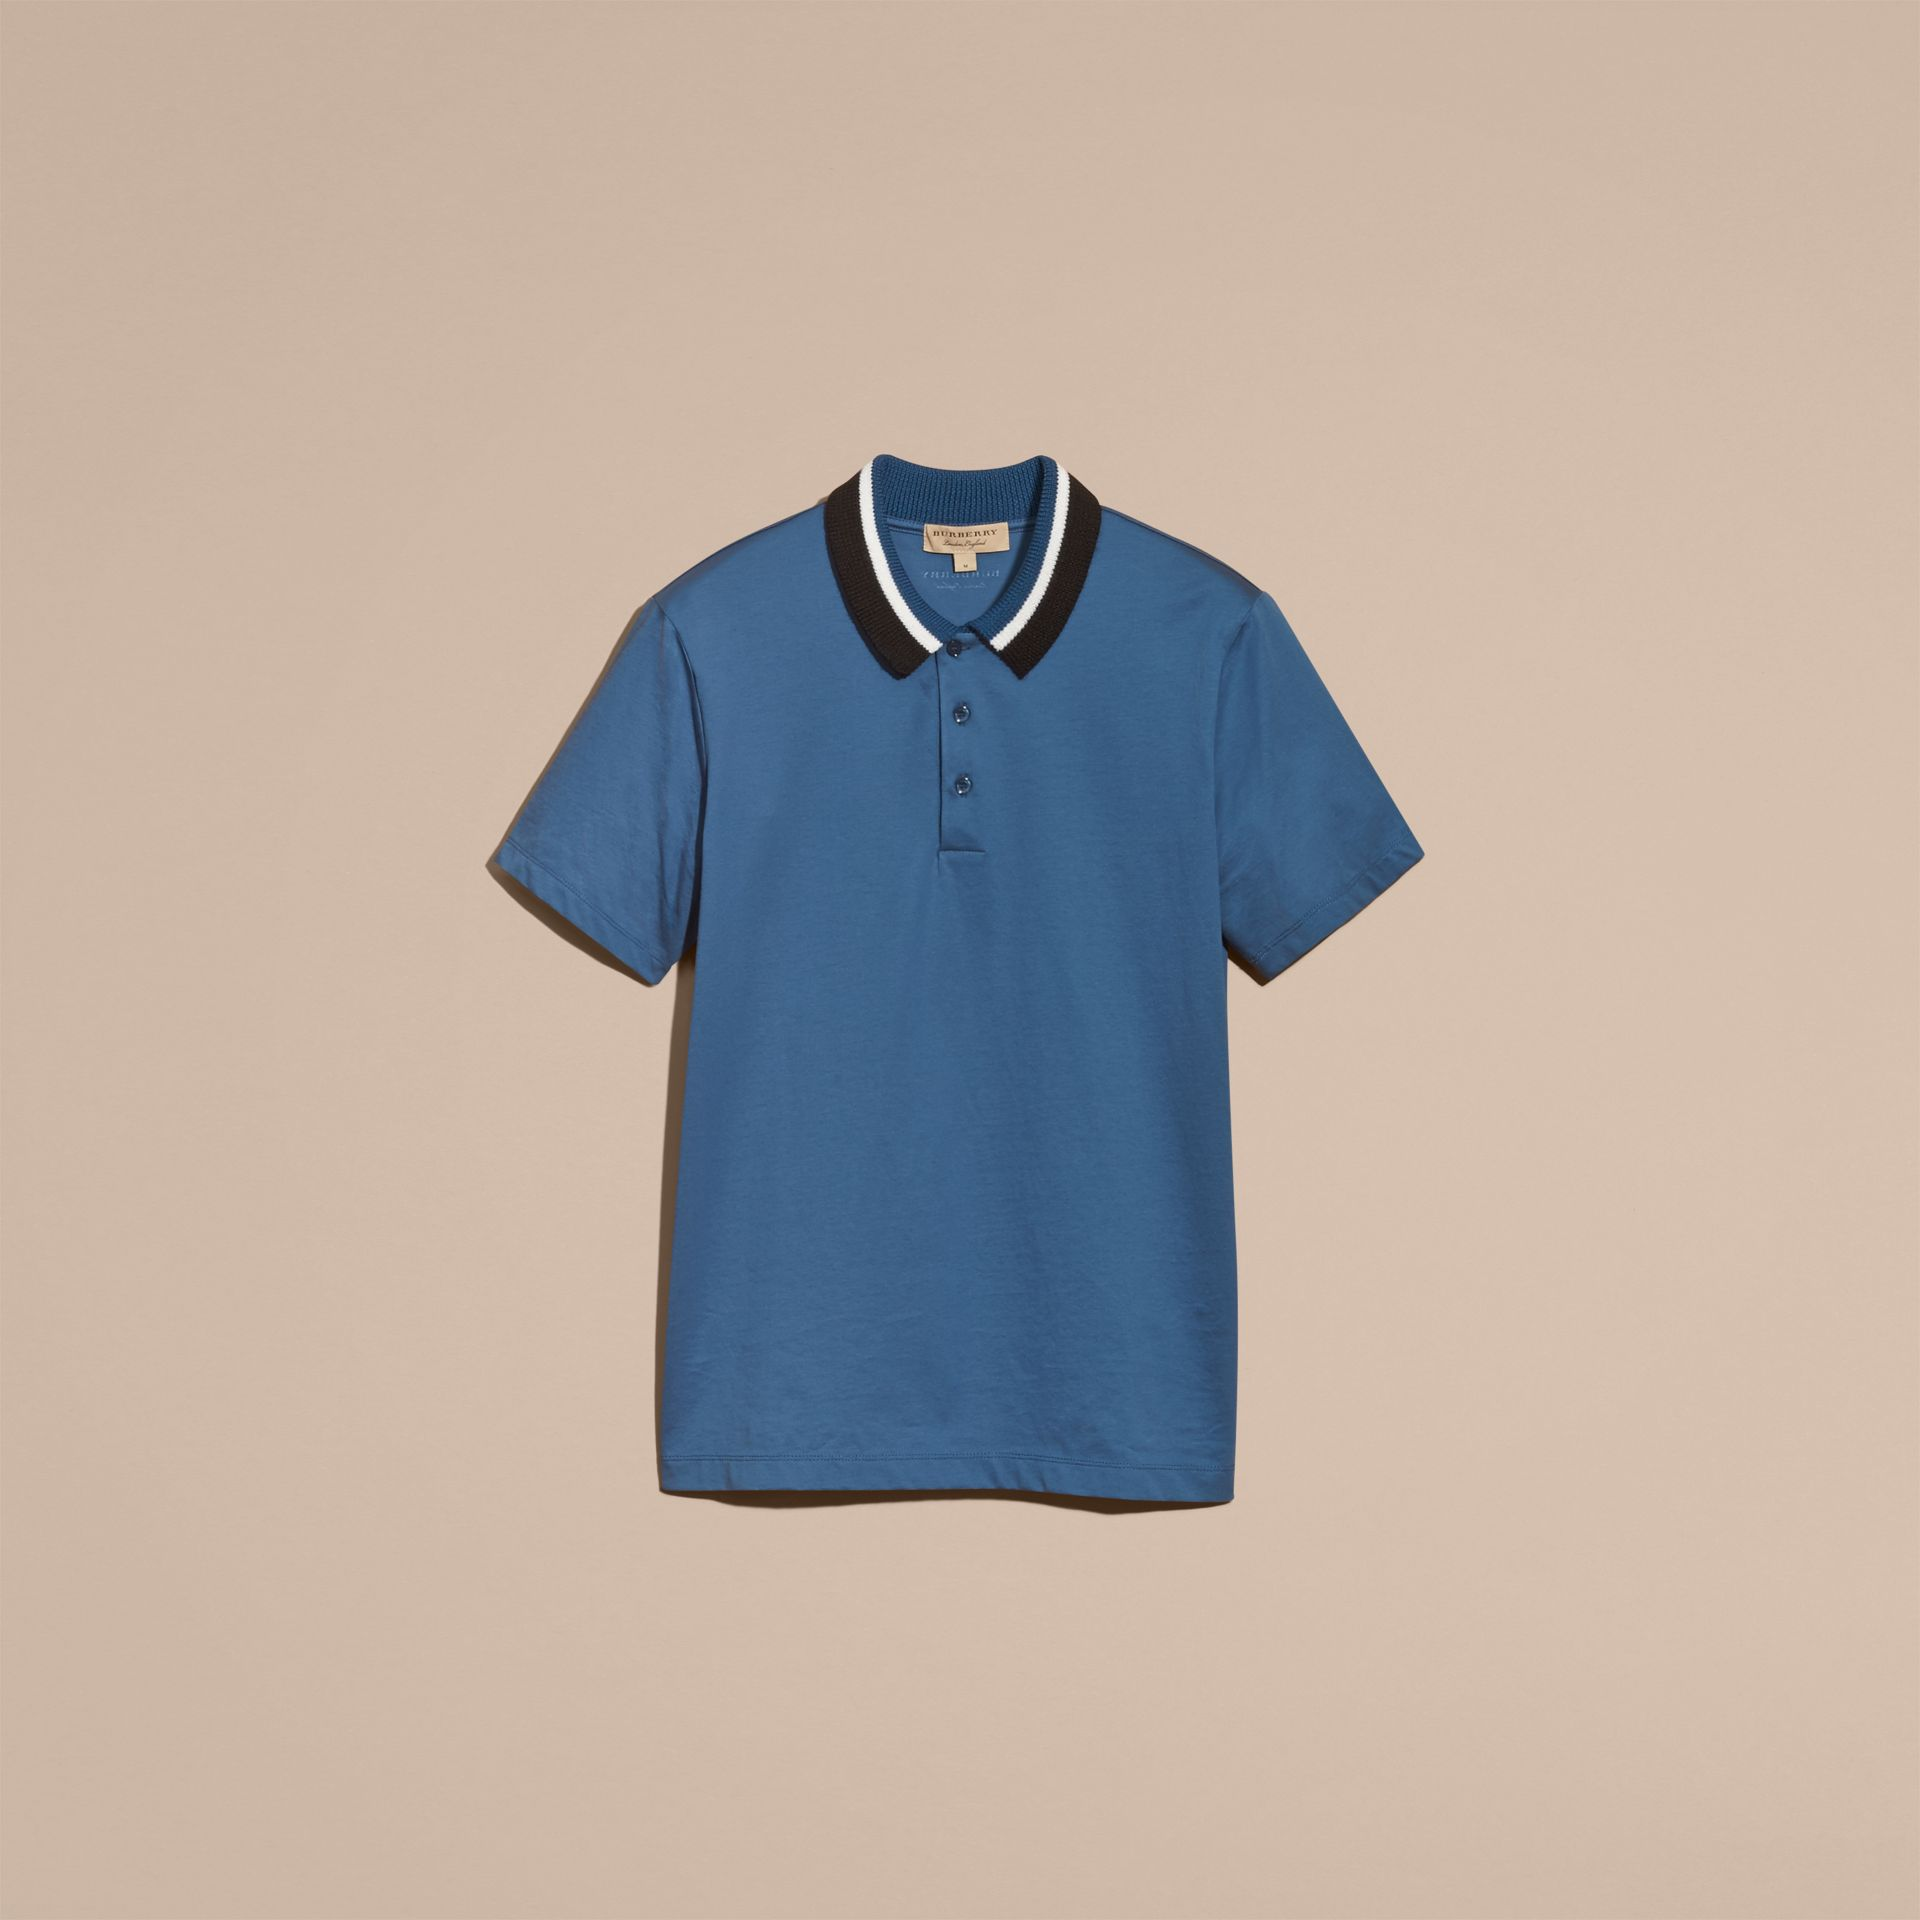 Mineral blue Cotton Polo Shirt with Knitted Collar Mineral Blue - gallery image 4